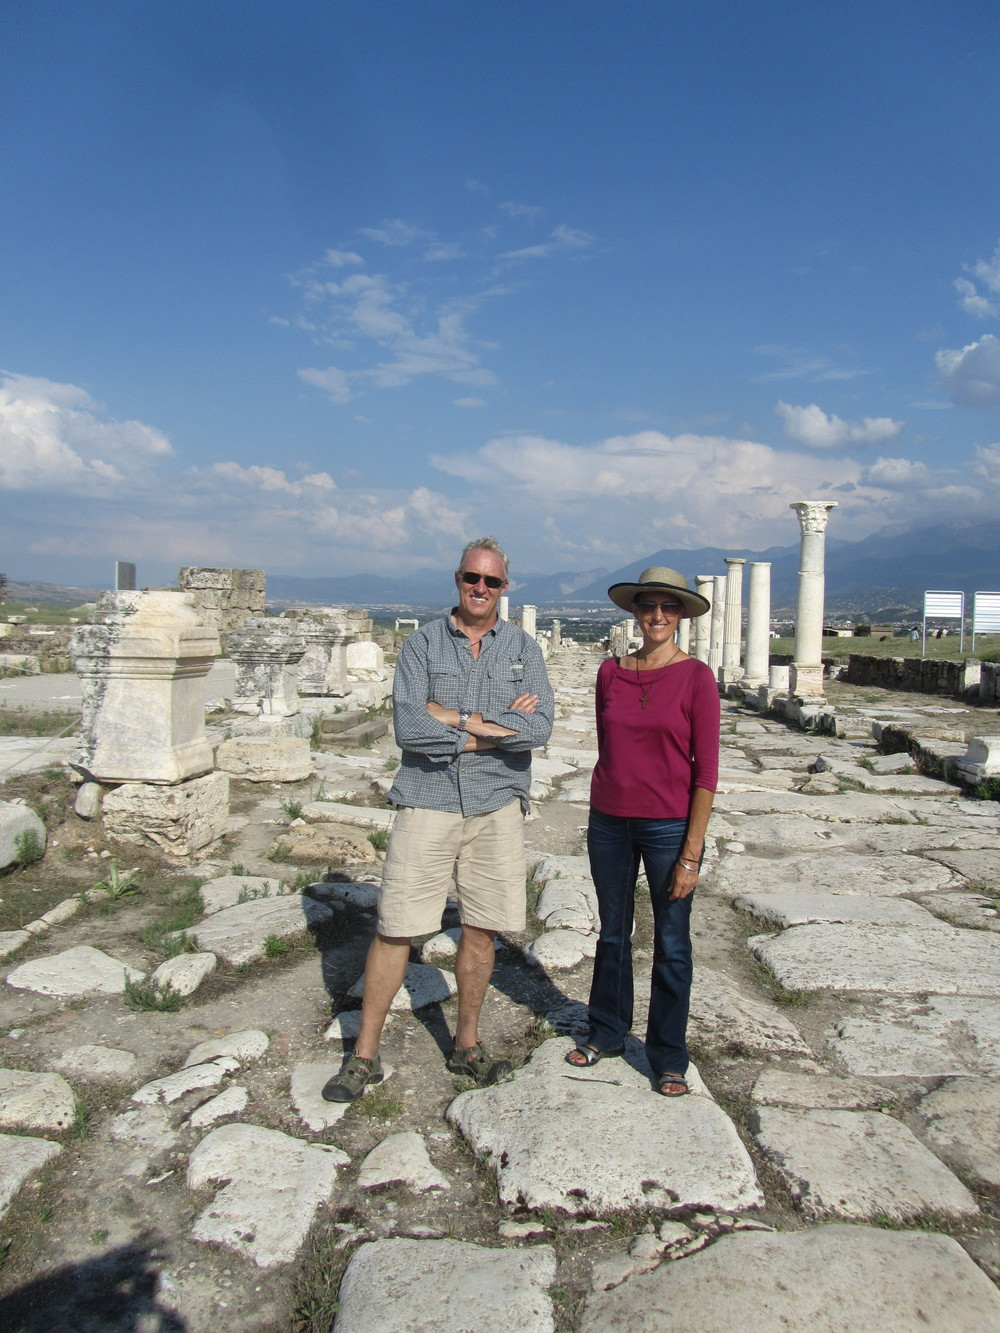 alking on the ancient streets of Laodicea in central Turkey